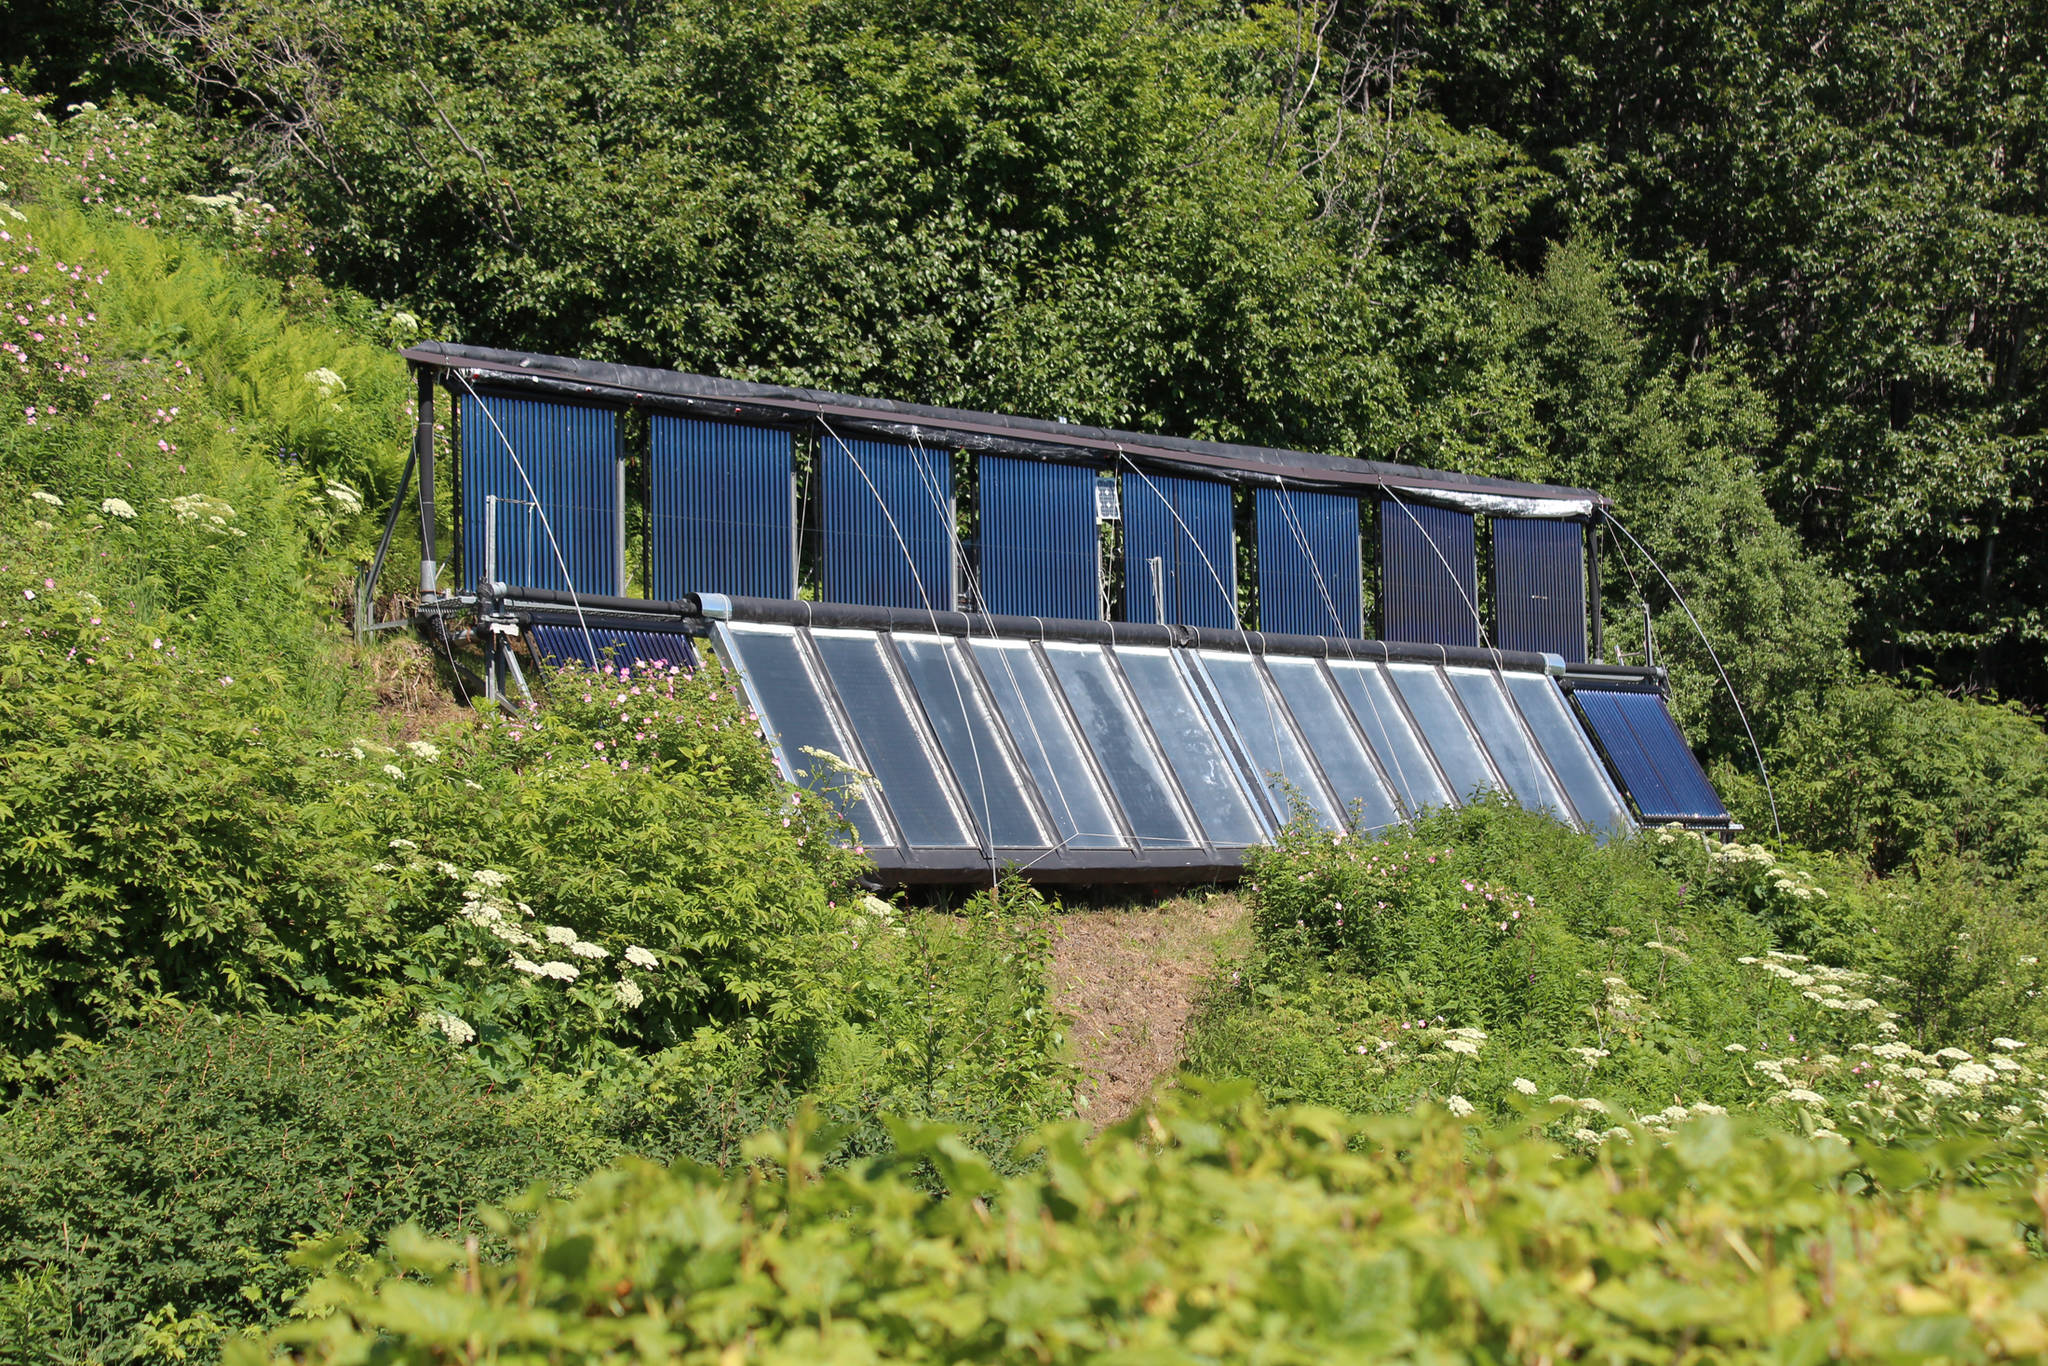 Several solar panels rest in the sun up an incline at the Dean family farm Friday, July 6, 2018 at their home off East End Road near Homer, Alaska. Artist Jeff Dean uses solar power to supplement a boiler system in place at their home, which was part of the annual Homer Solar Tour this year. (Photo by Megan Pacer/Homer News)